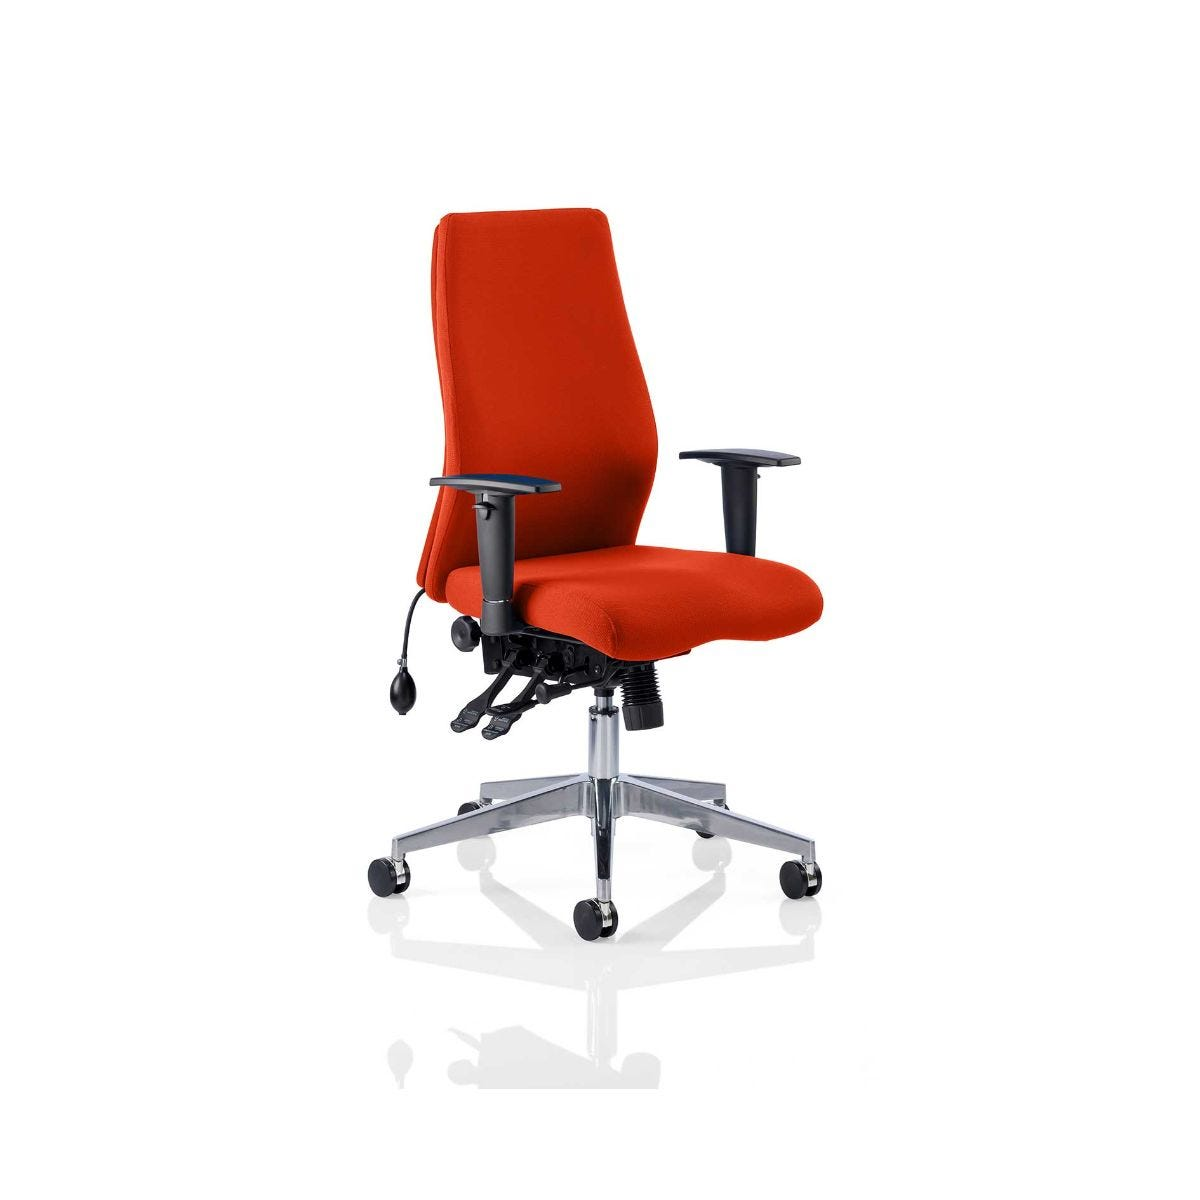 Onyx Bespoke Office Chair, Tabasco